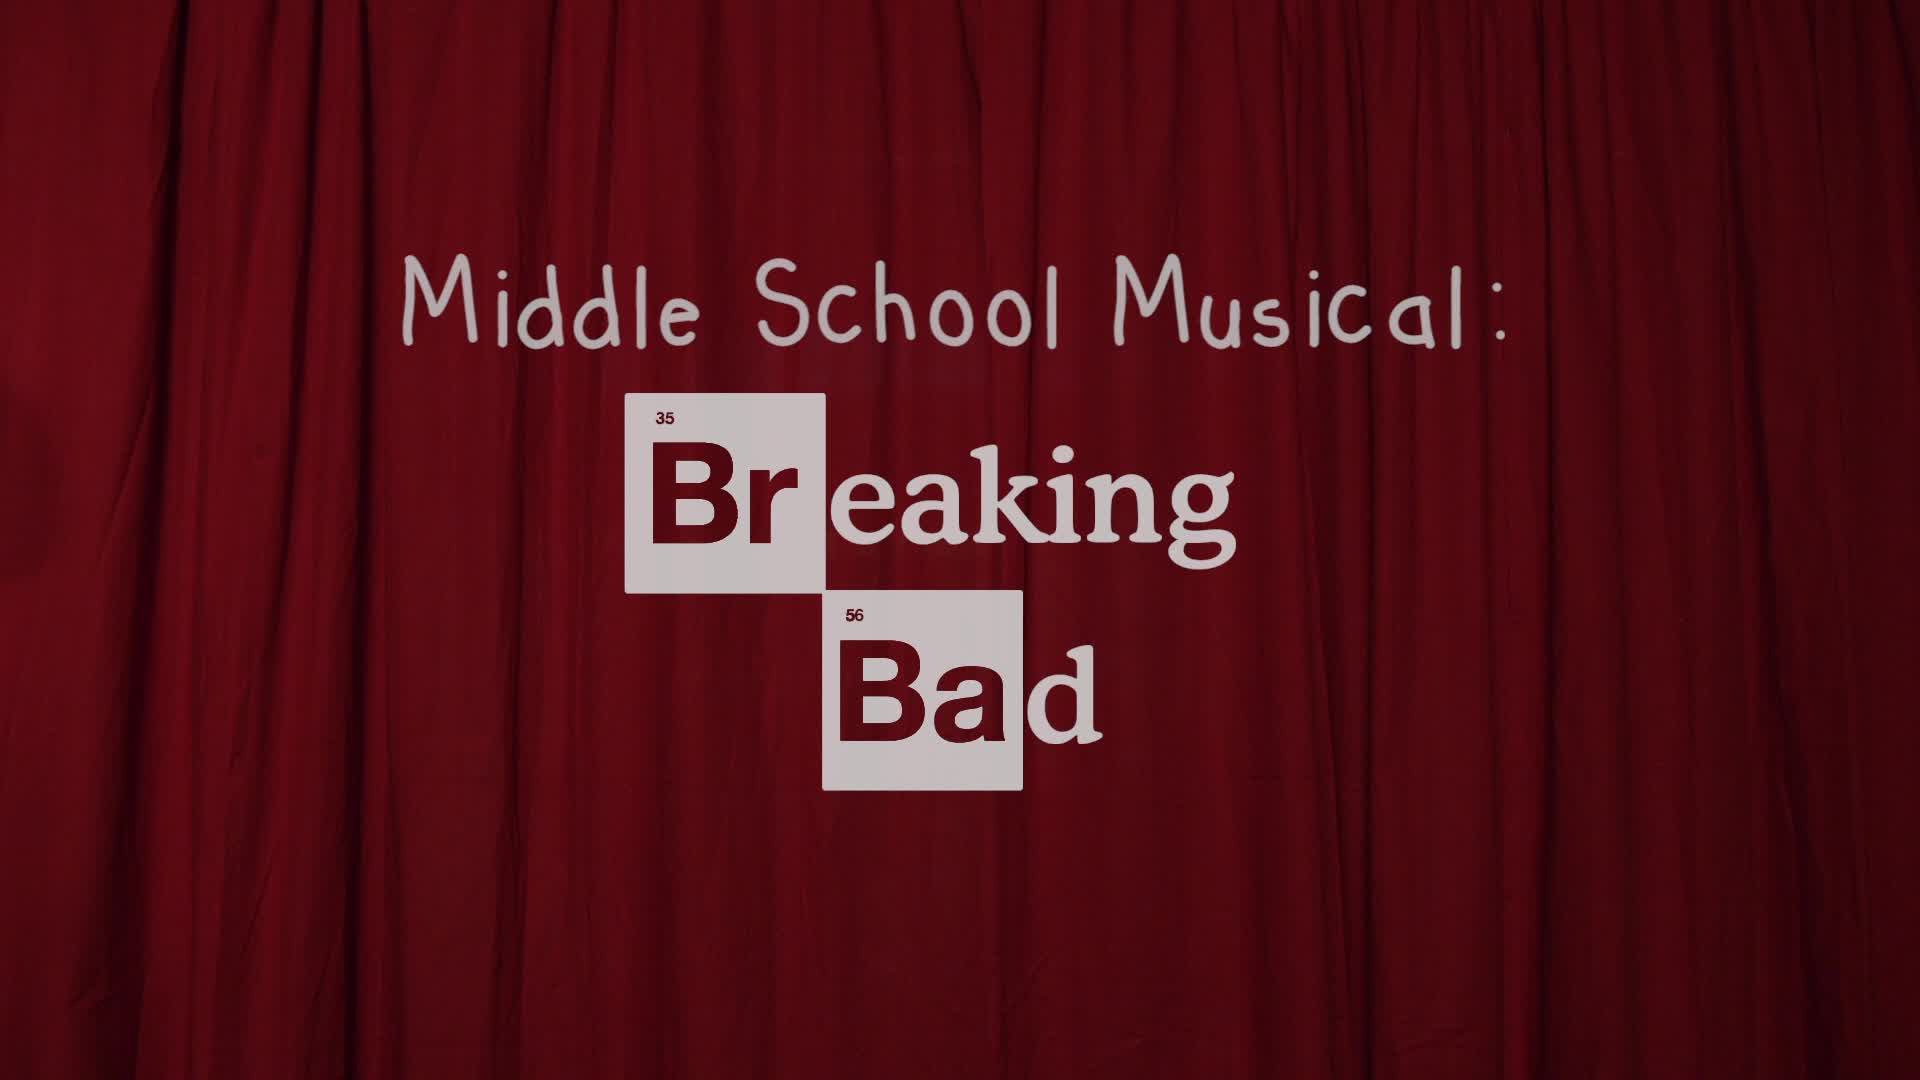 People's Voice - Breaking Bad: The Middle School Musical